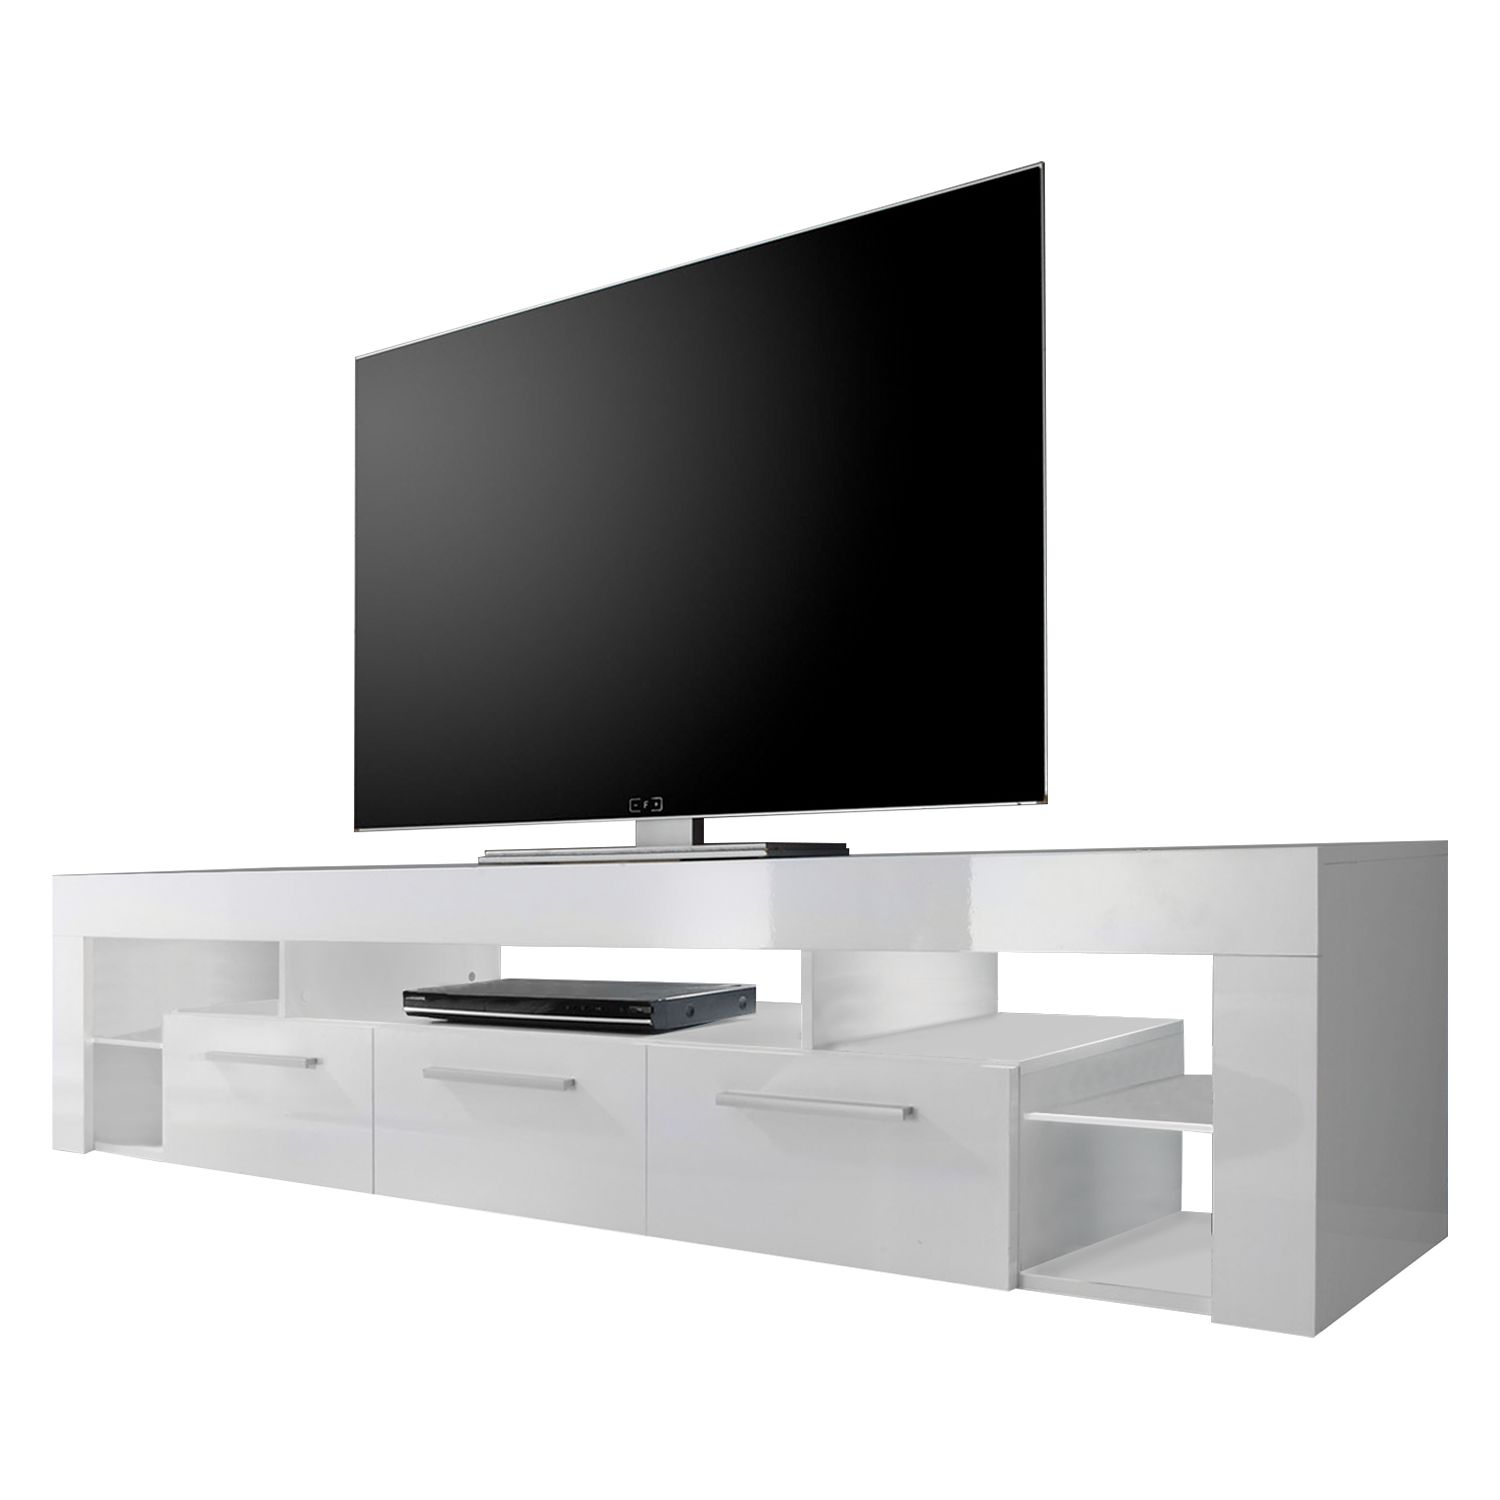 hoogglans lowboard kopen online internetwinkel. Black Bedroom Furniture Sets. Home Design Ideas